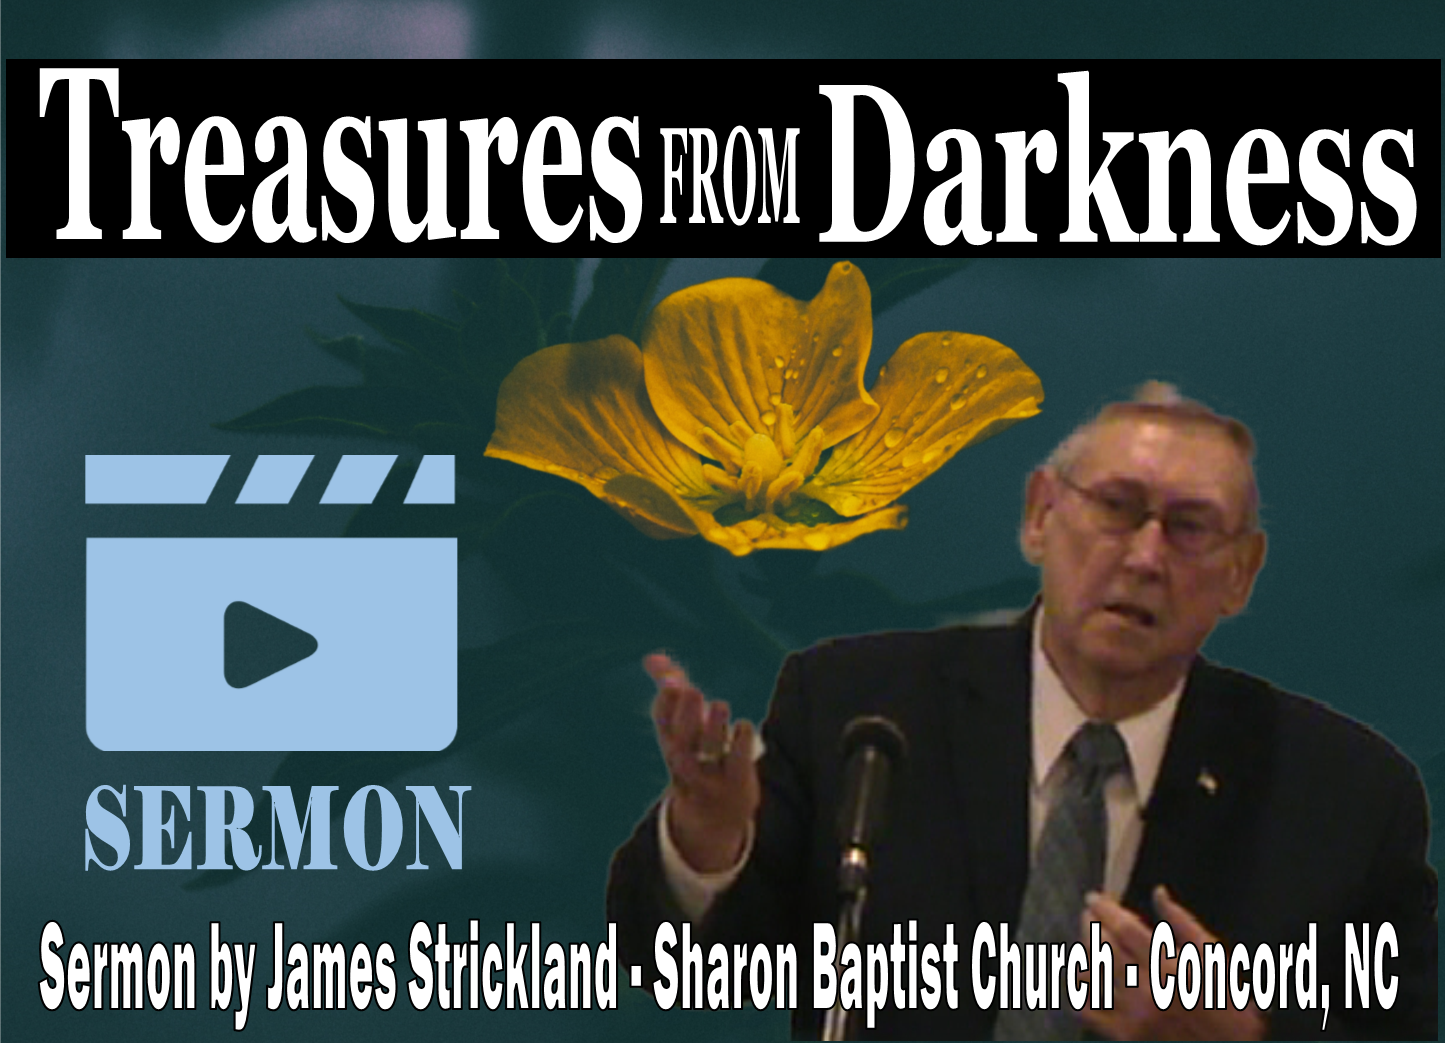 Treasures from the Darkness - Sermon by James Strickland at Sharon Baptist Church